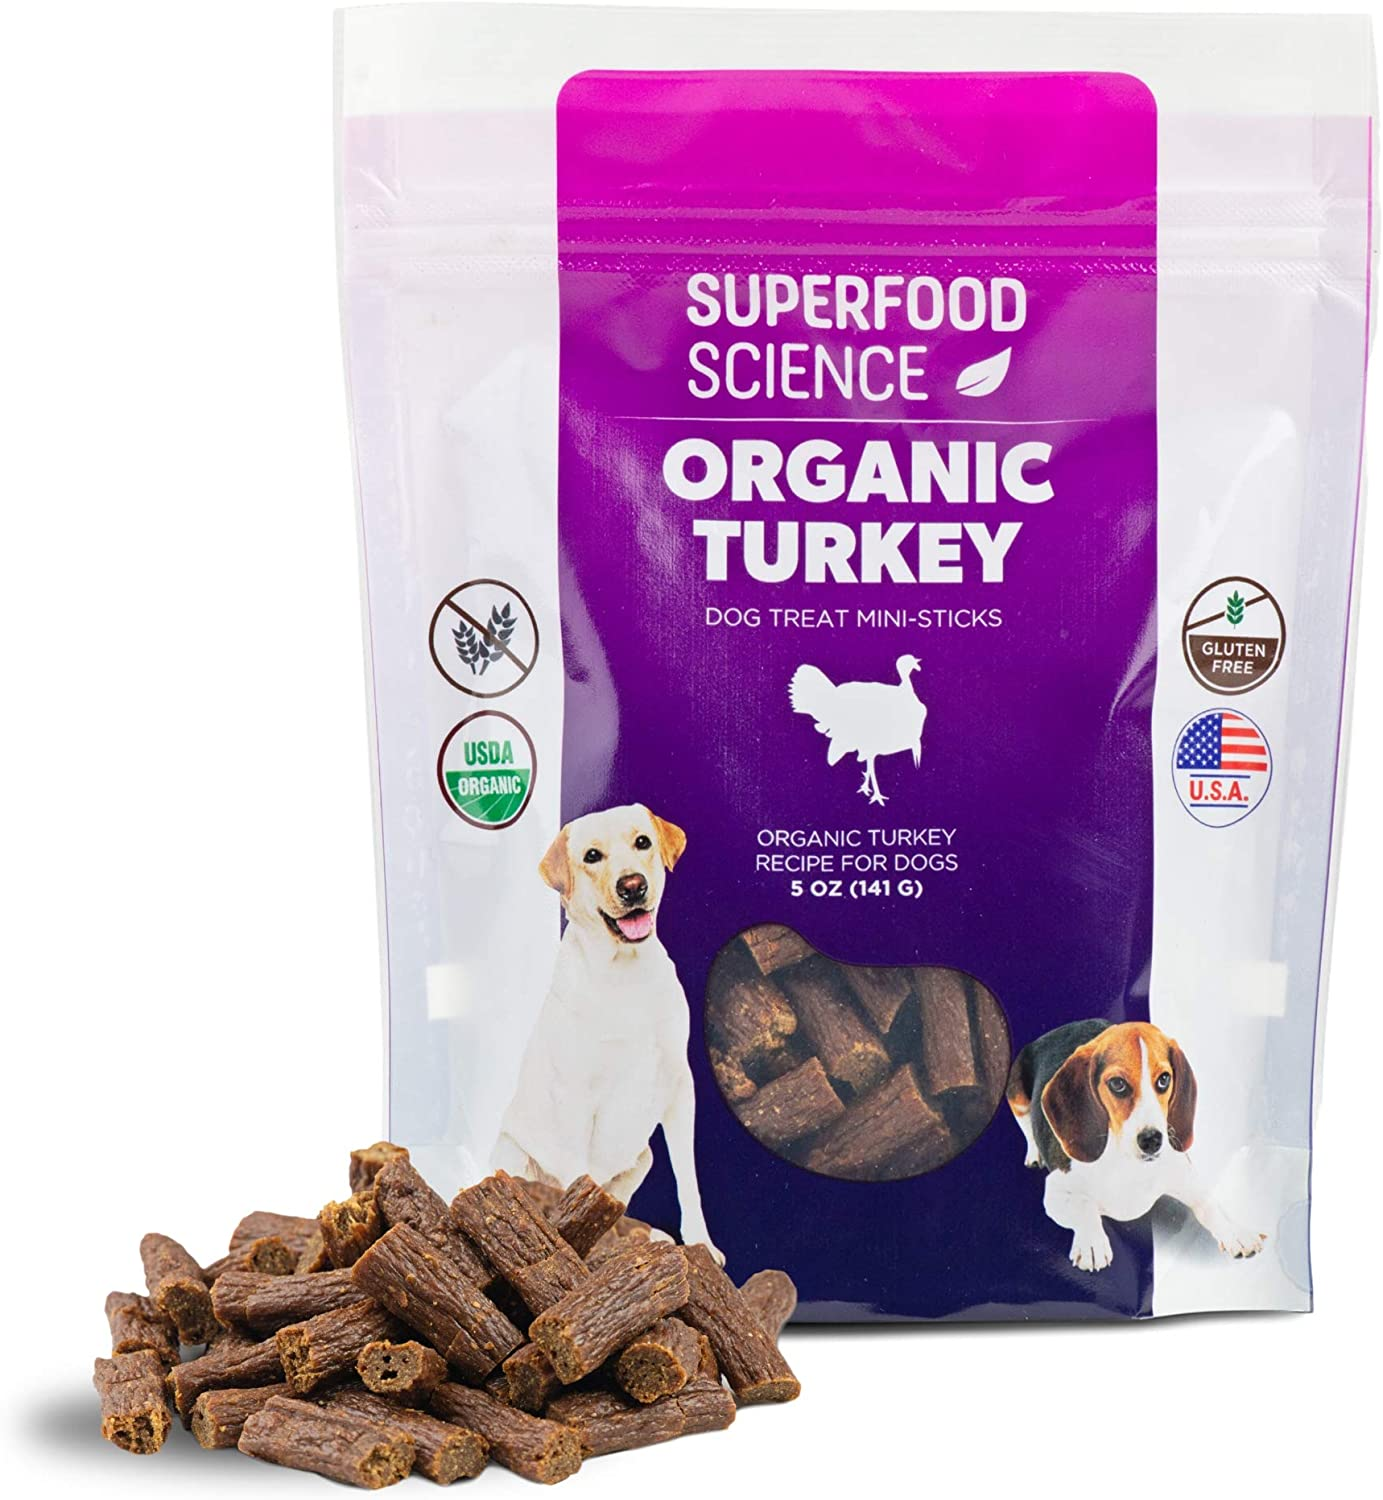 All Natural Organic Dog Treats, Turkey Dog Treats Made in USA Only, Grain Free Dog Treats with Immune Support, USDA Certified Organic, Non GMO, Gluten Free, 5 Oz Pouch